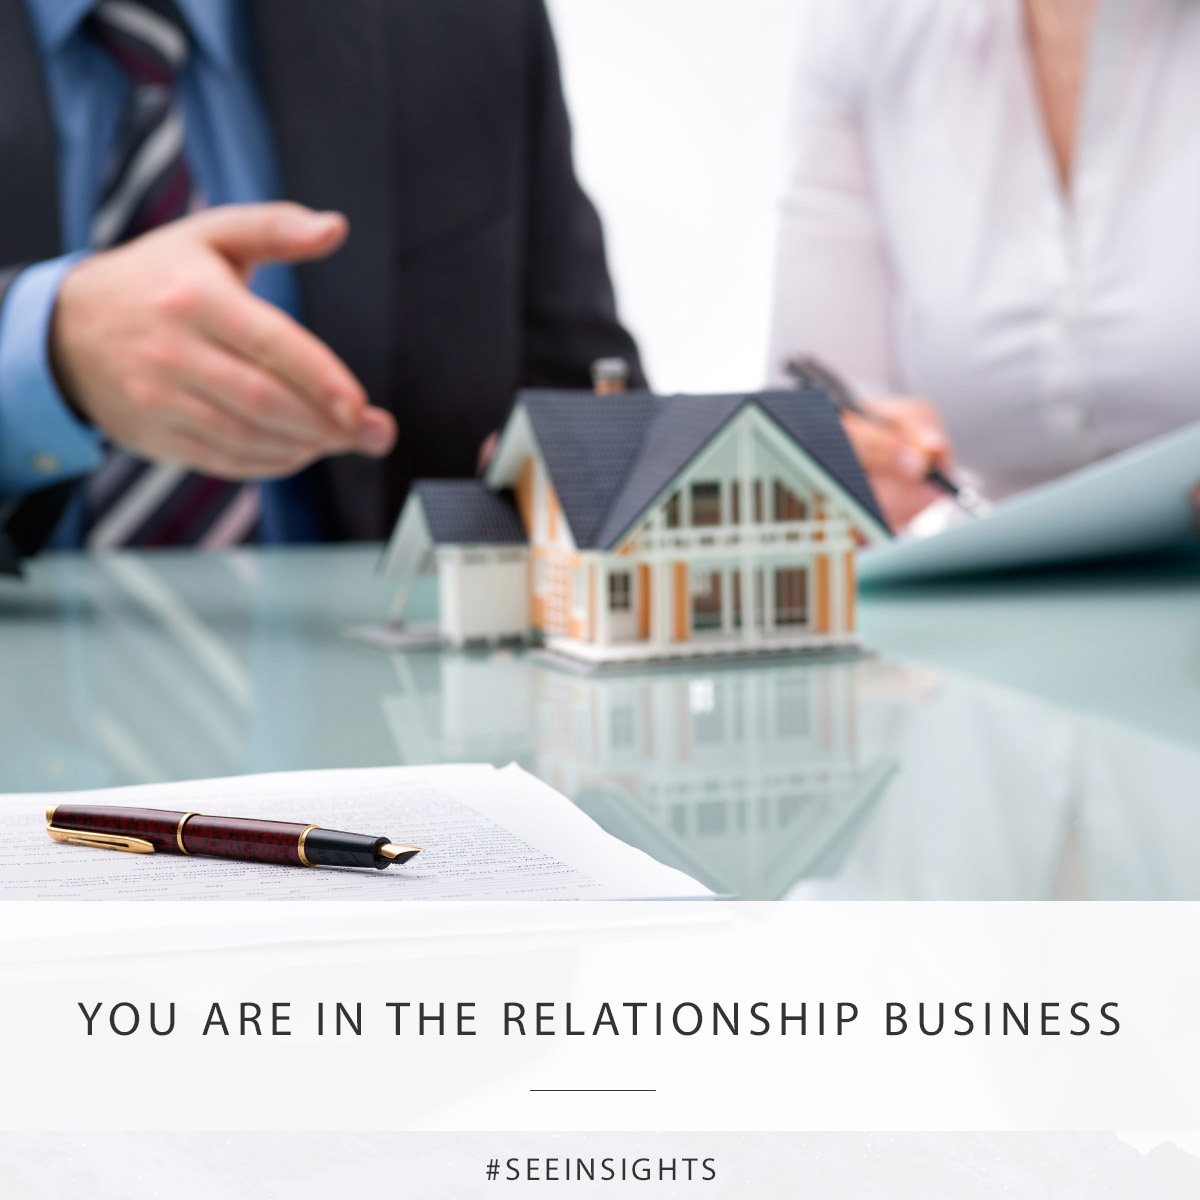 You are in the relationship business